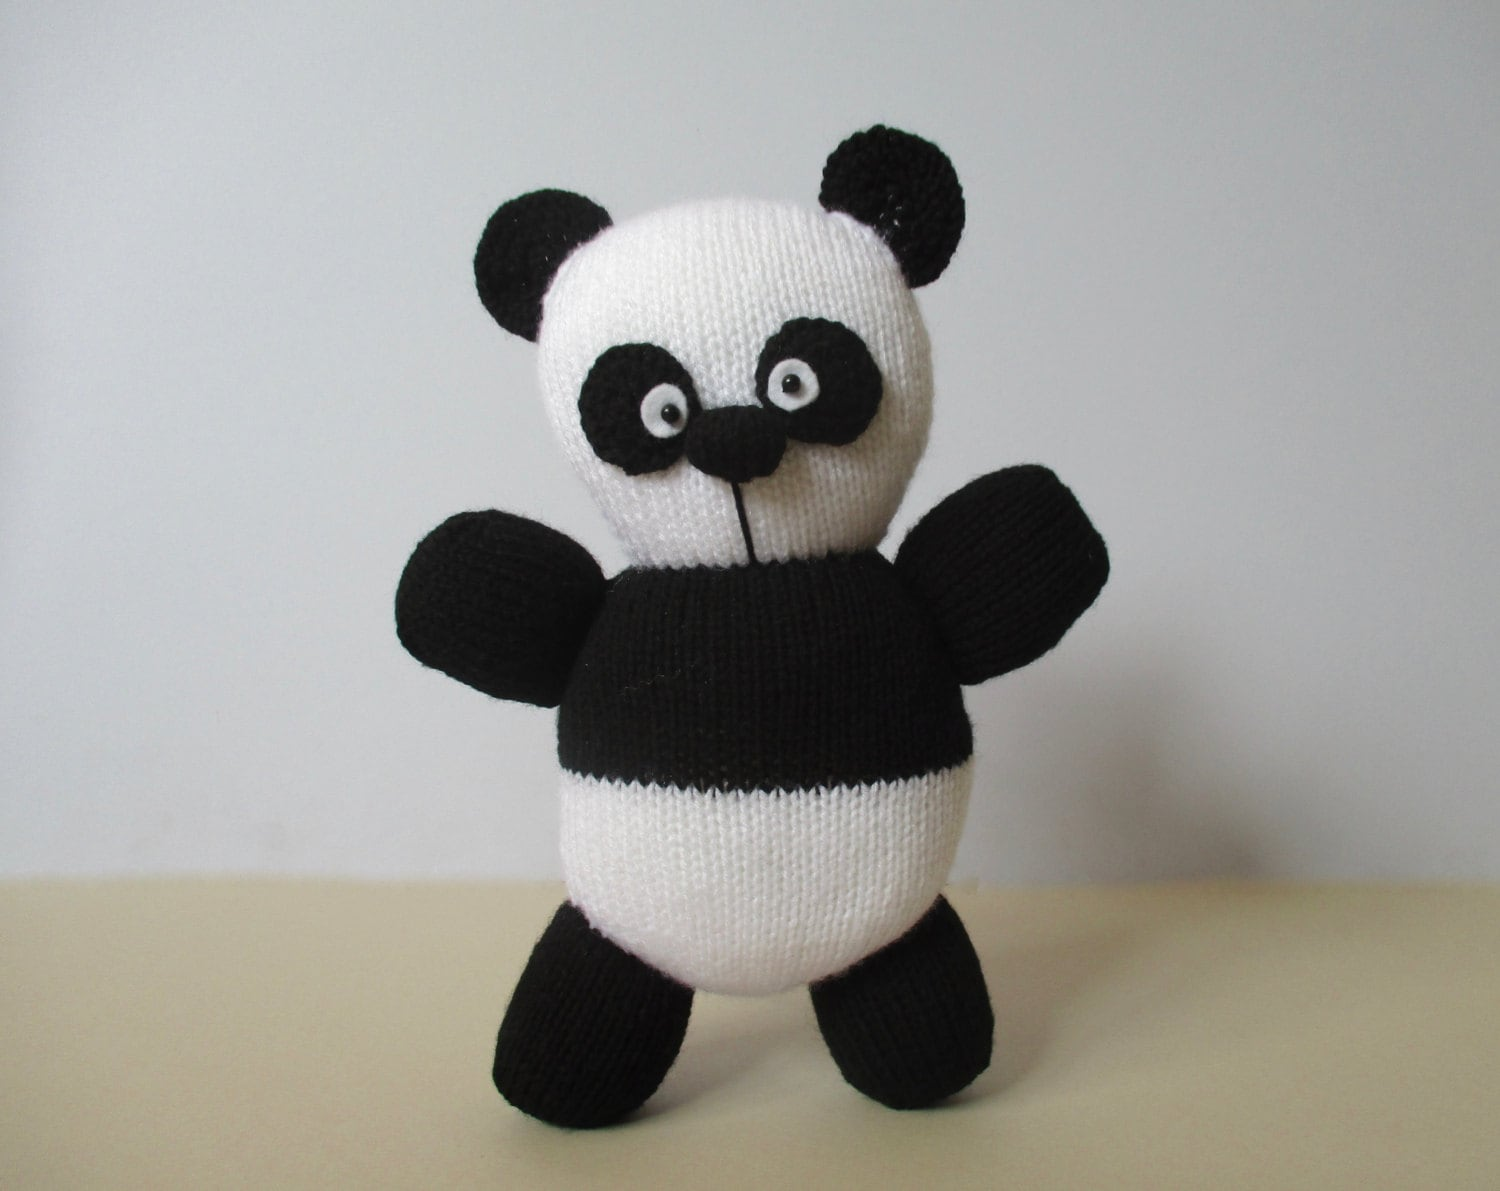 Oreo Panda toy knitting patterns by fluffandfuzz on Etsy